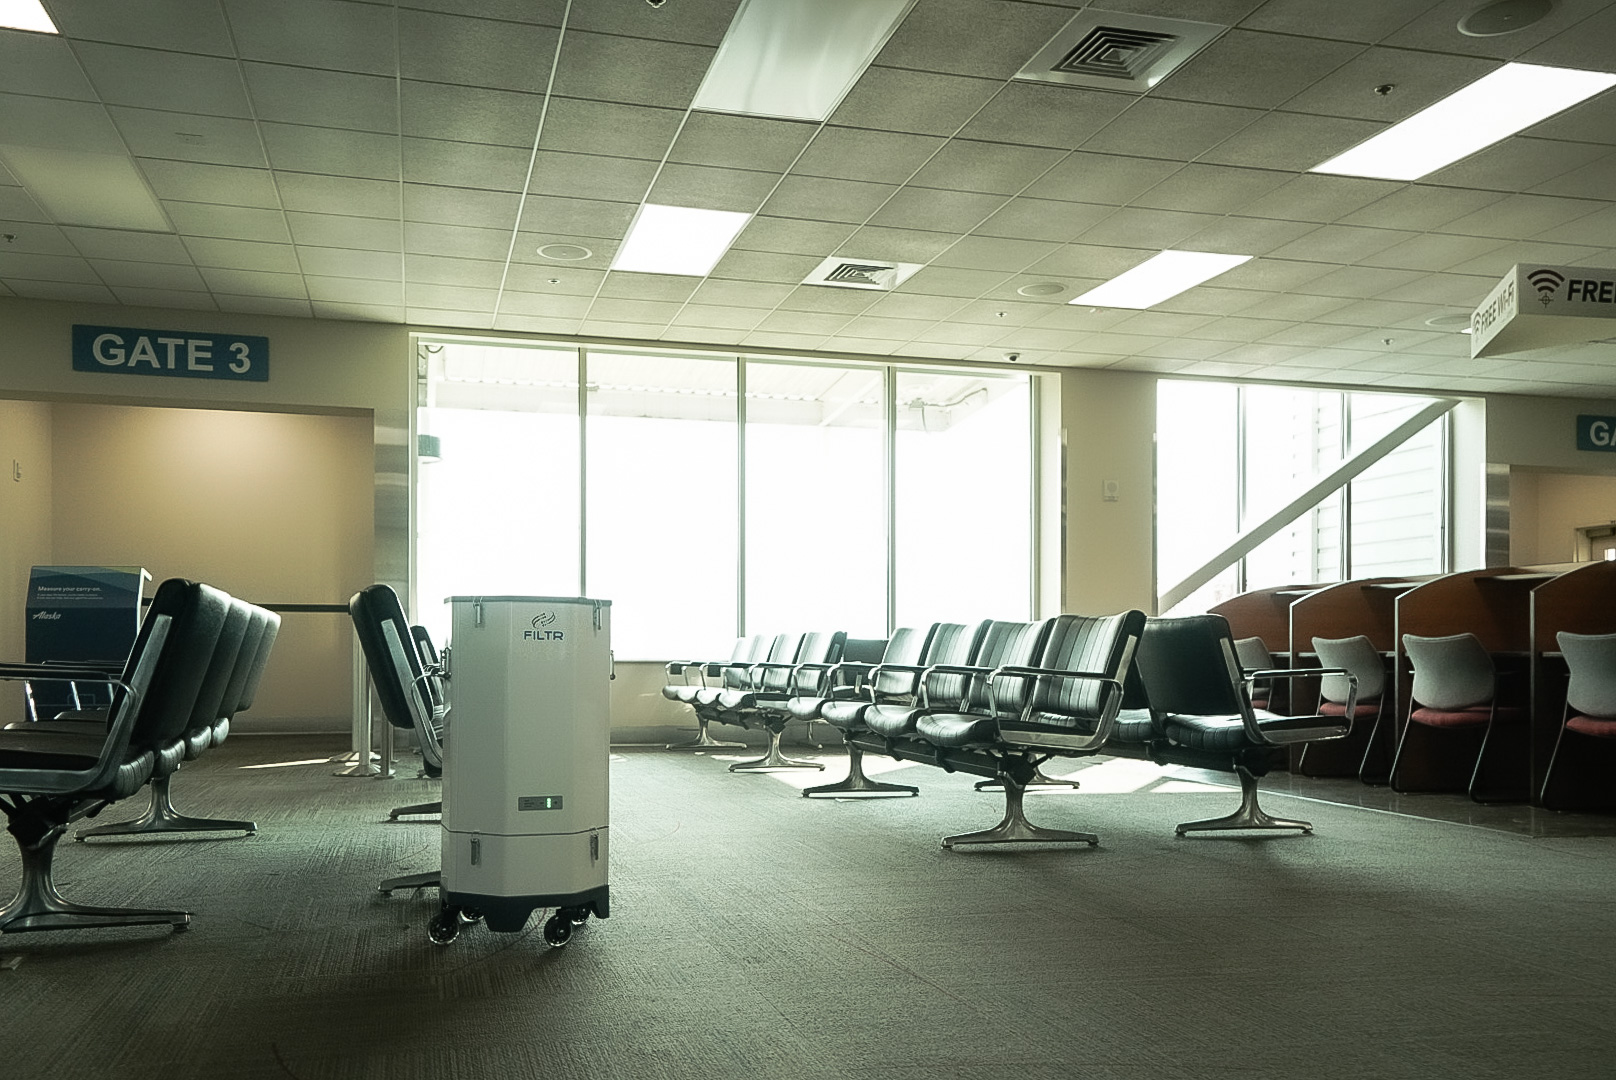 Lighthouse Worldwide Solution installed a cleanroom grade air purifier in the Rogue Valley Airport to help improve southern Oregon air quality.